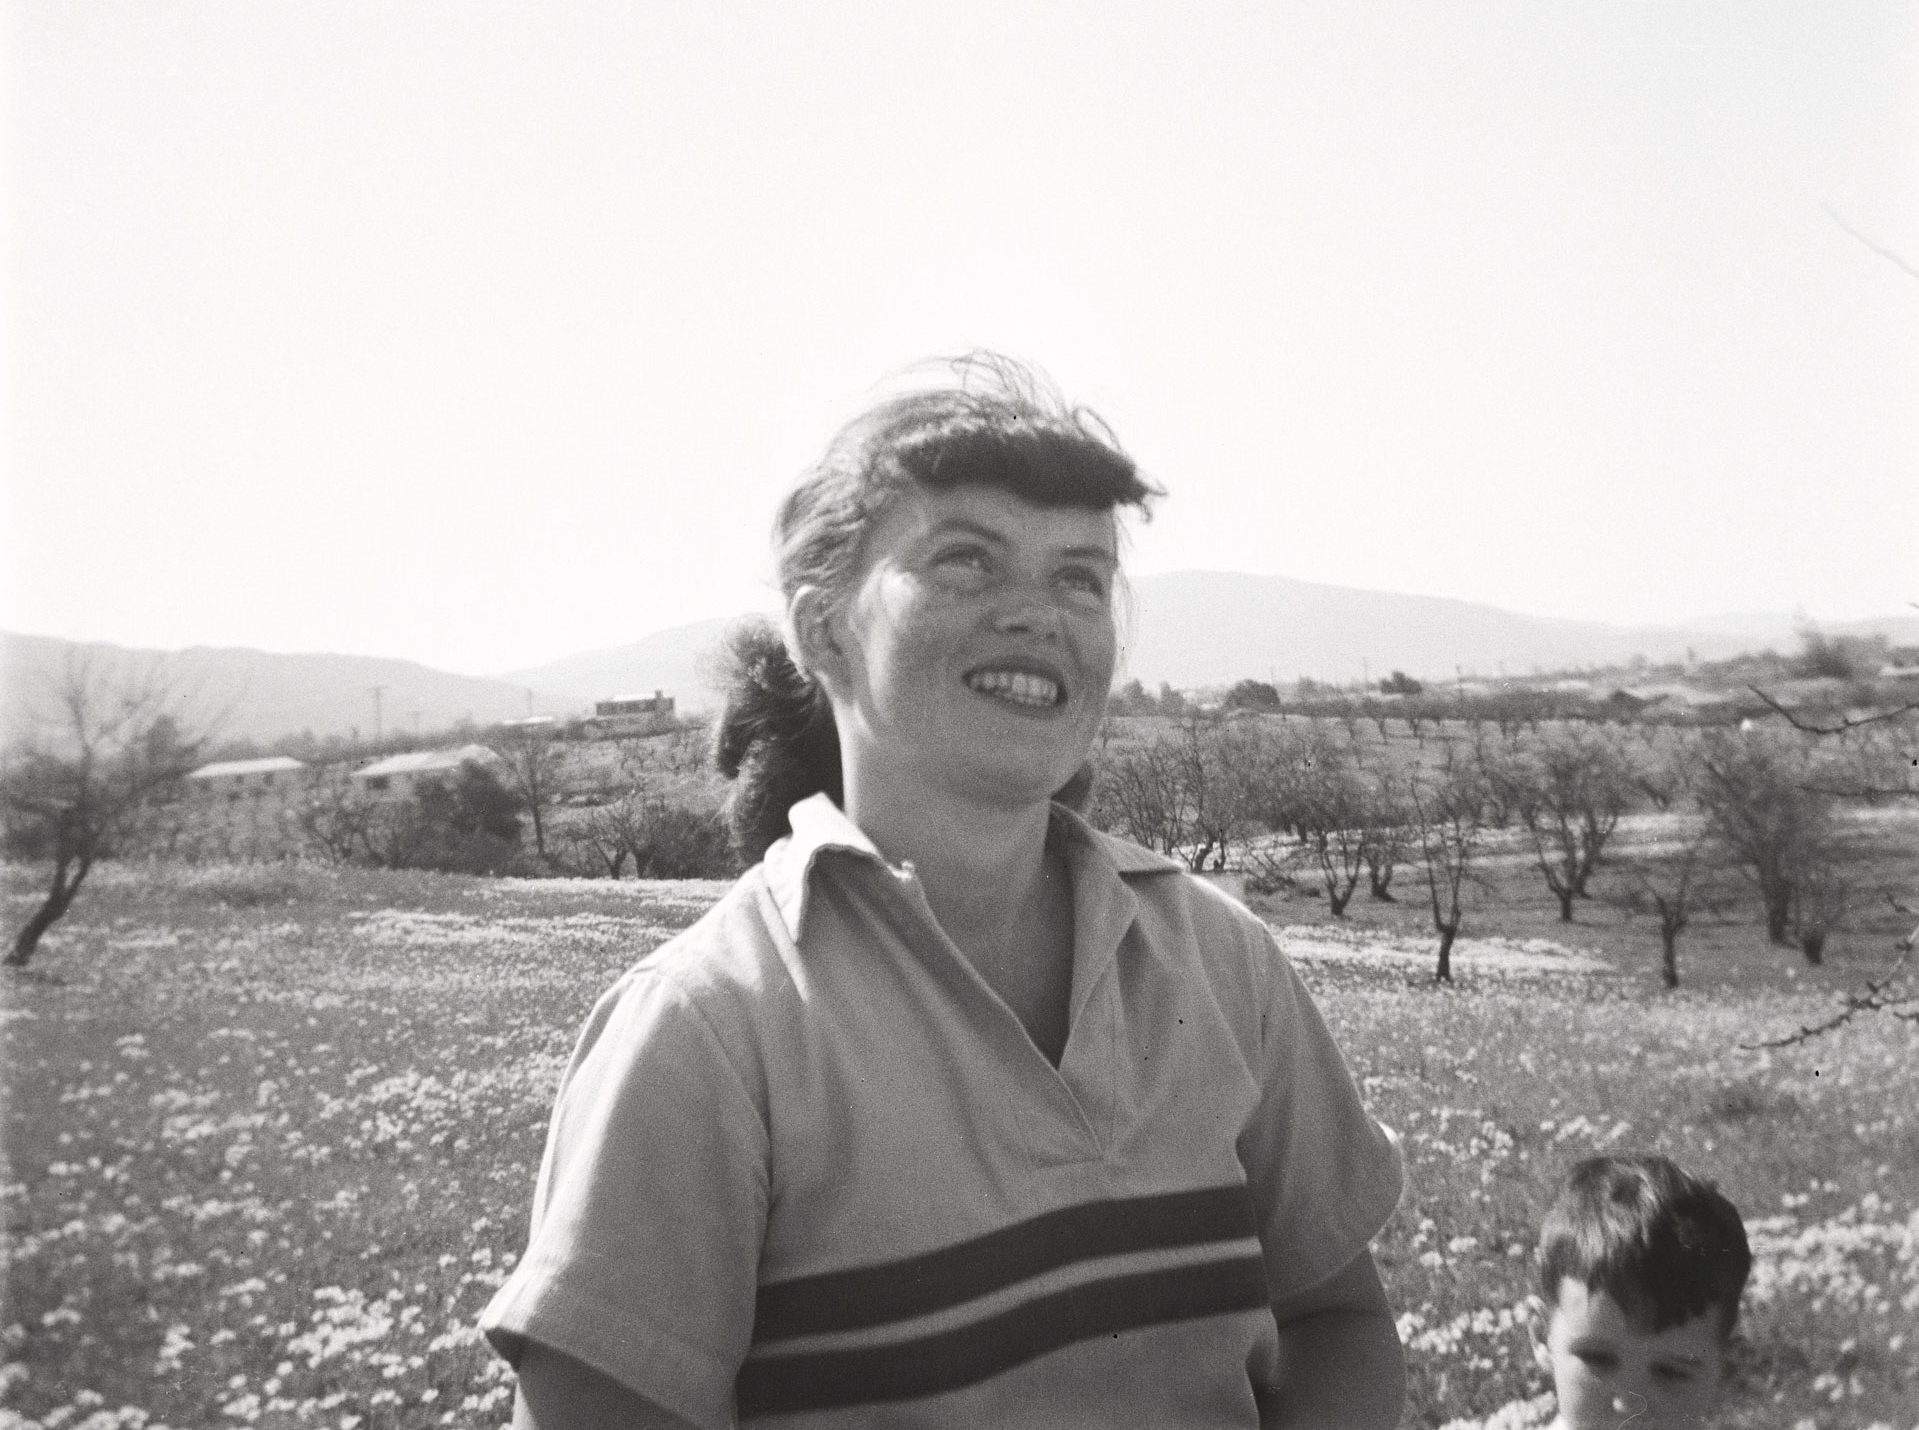 Image of Kathryn Kennedy at 23 founder of Kathryn Kennedy Winery